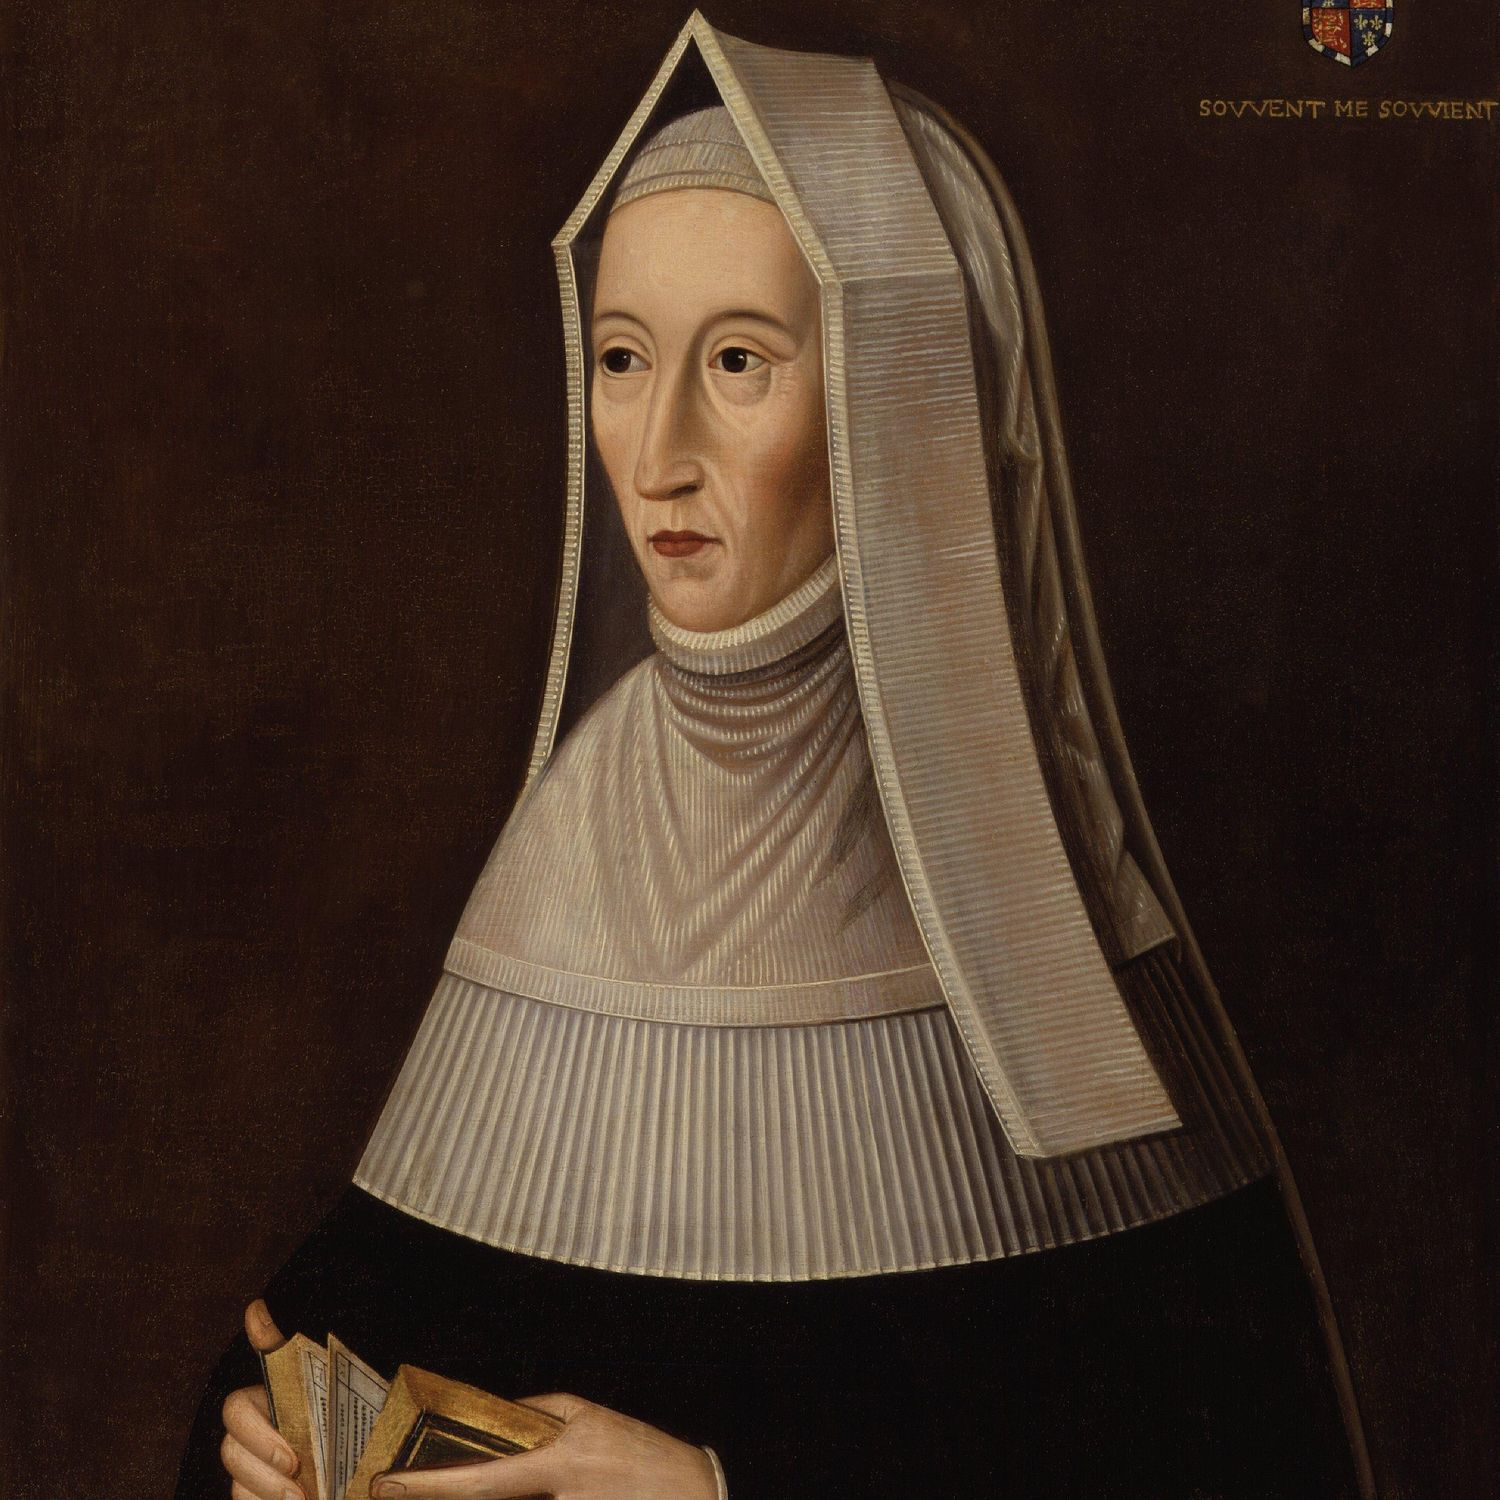 Episode 042: Tudor Times on Margaret Beaufort